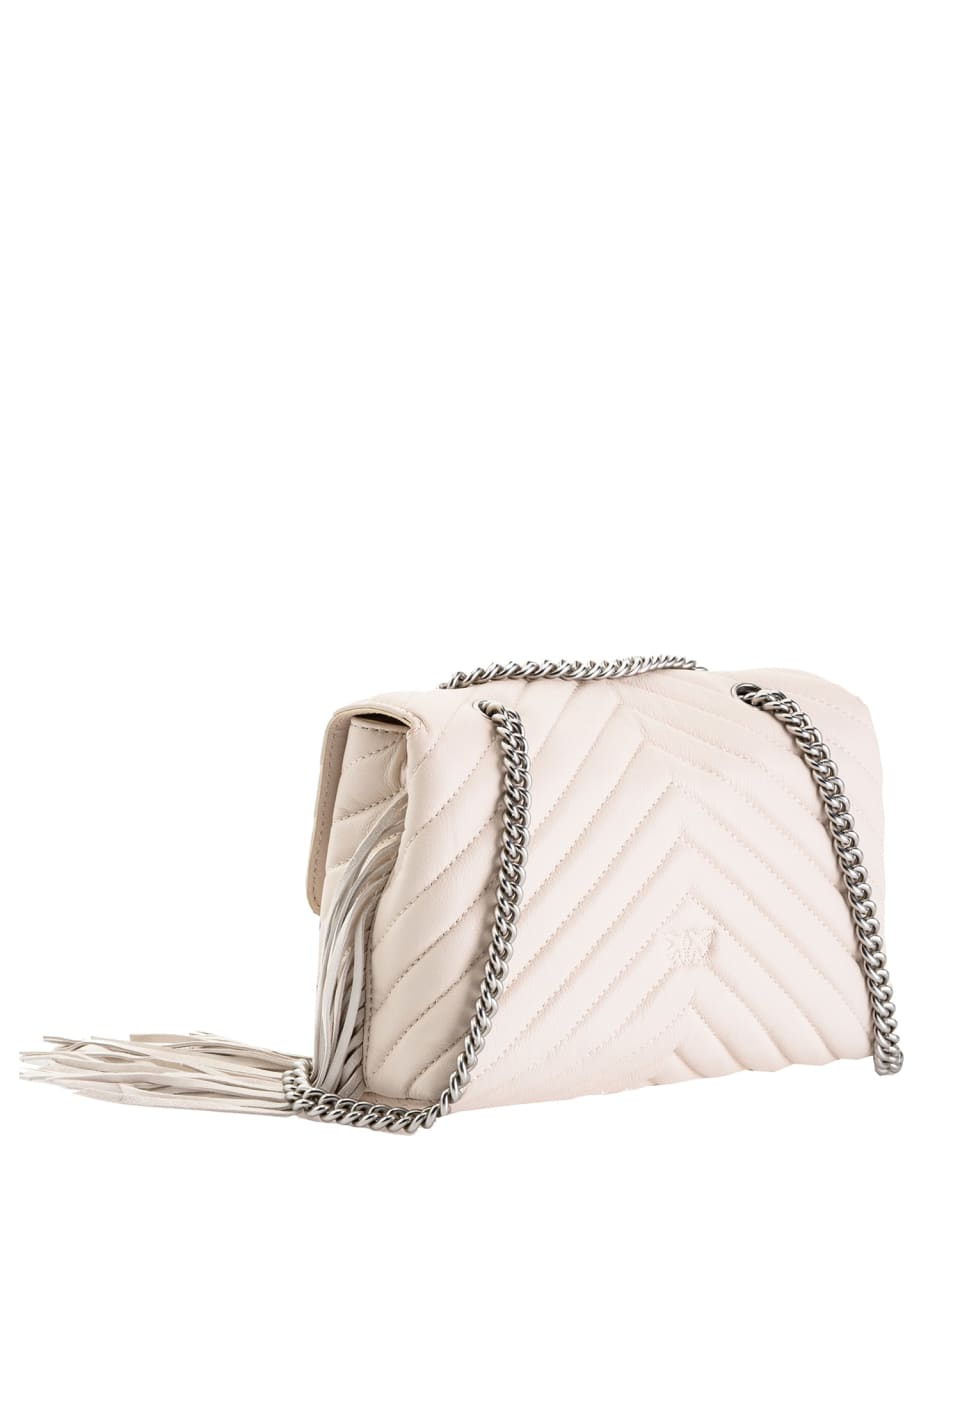 Love Bag Puff Fringes in nappa leather